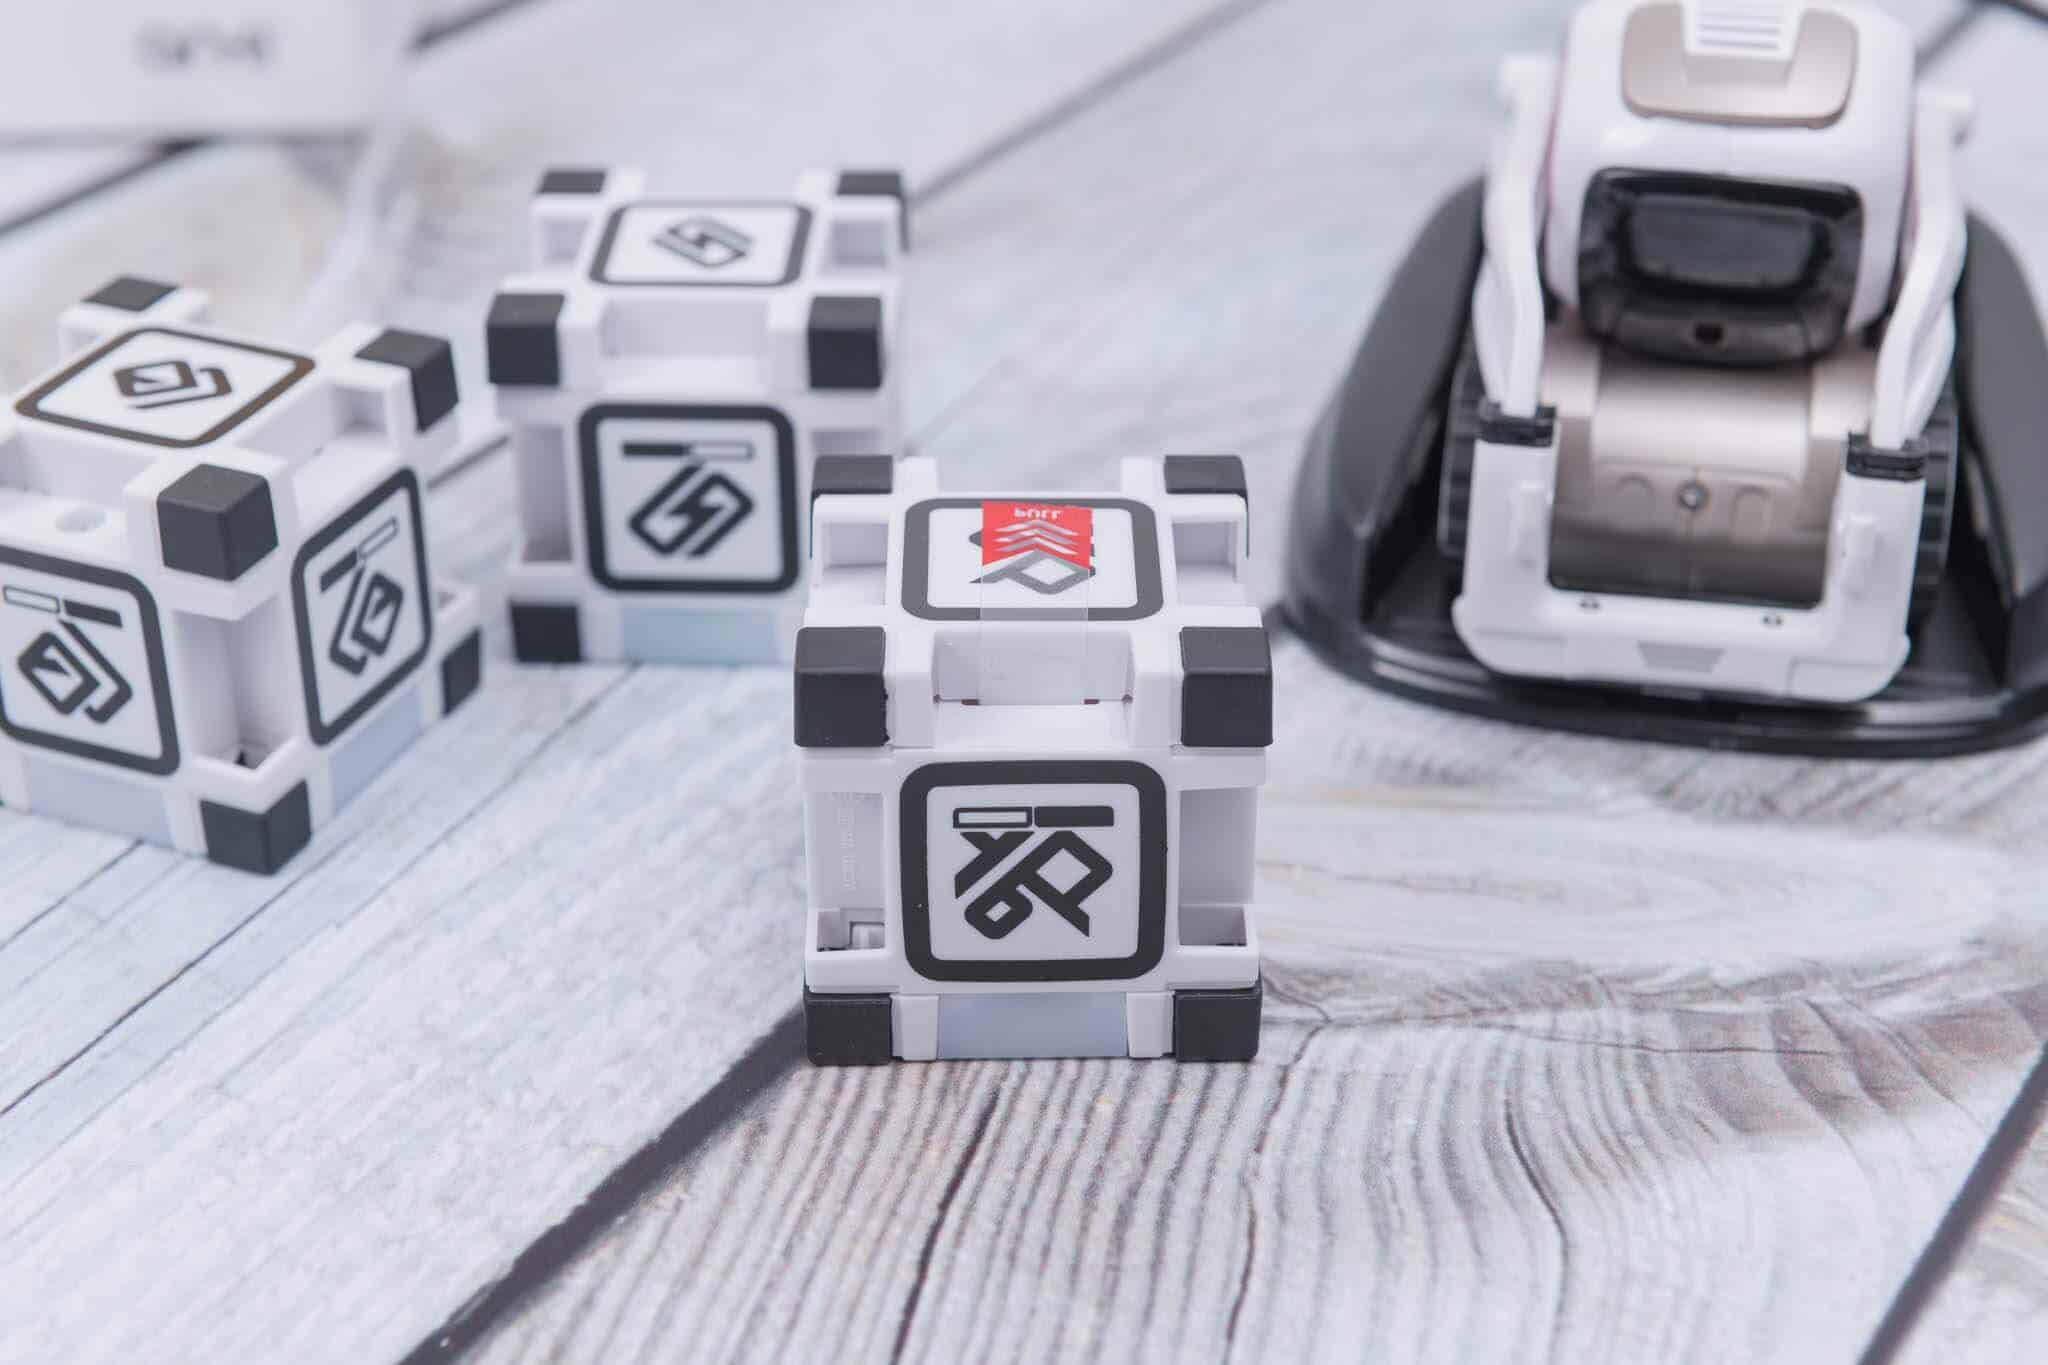 Anki Cozmo Robot Review - Remove Battery Tabs